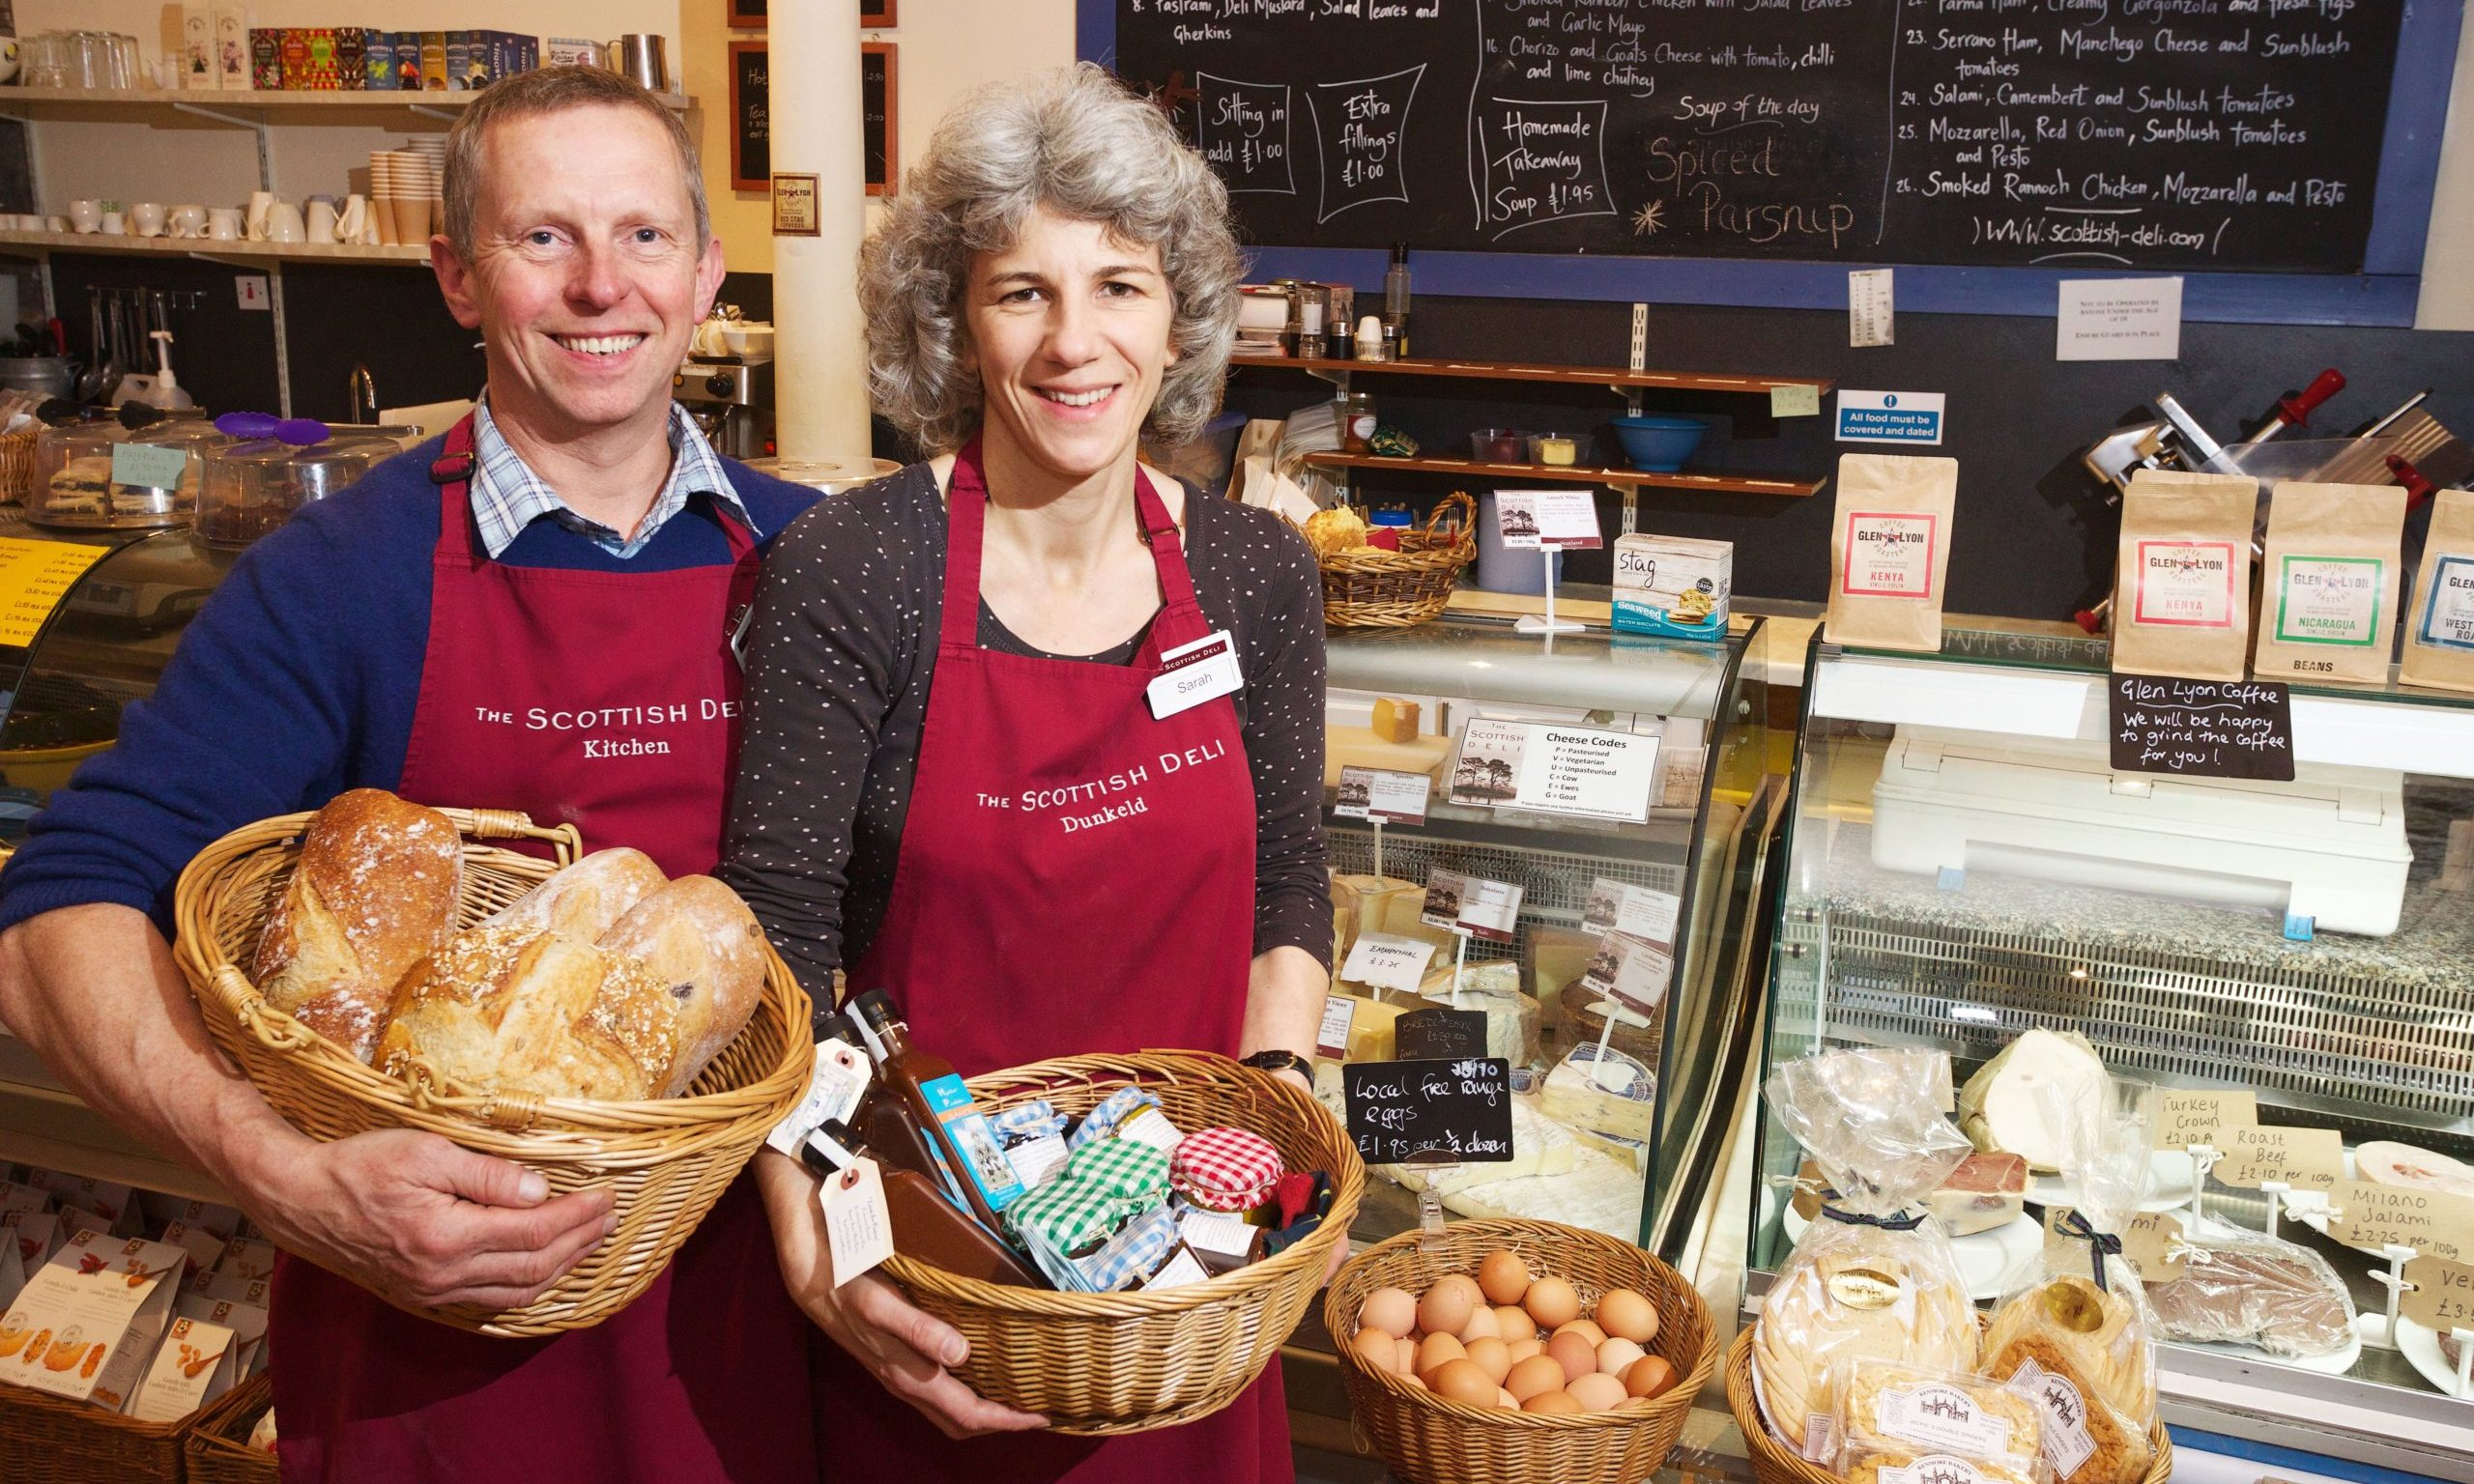 Simon Yearsley and Sarah Yearsley, owners of The Scottish Deli.